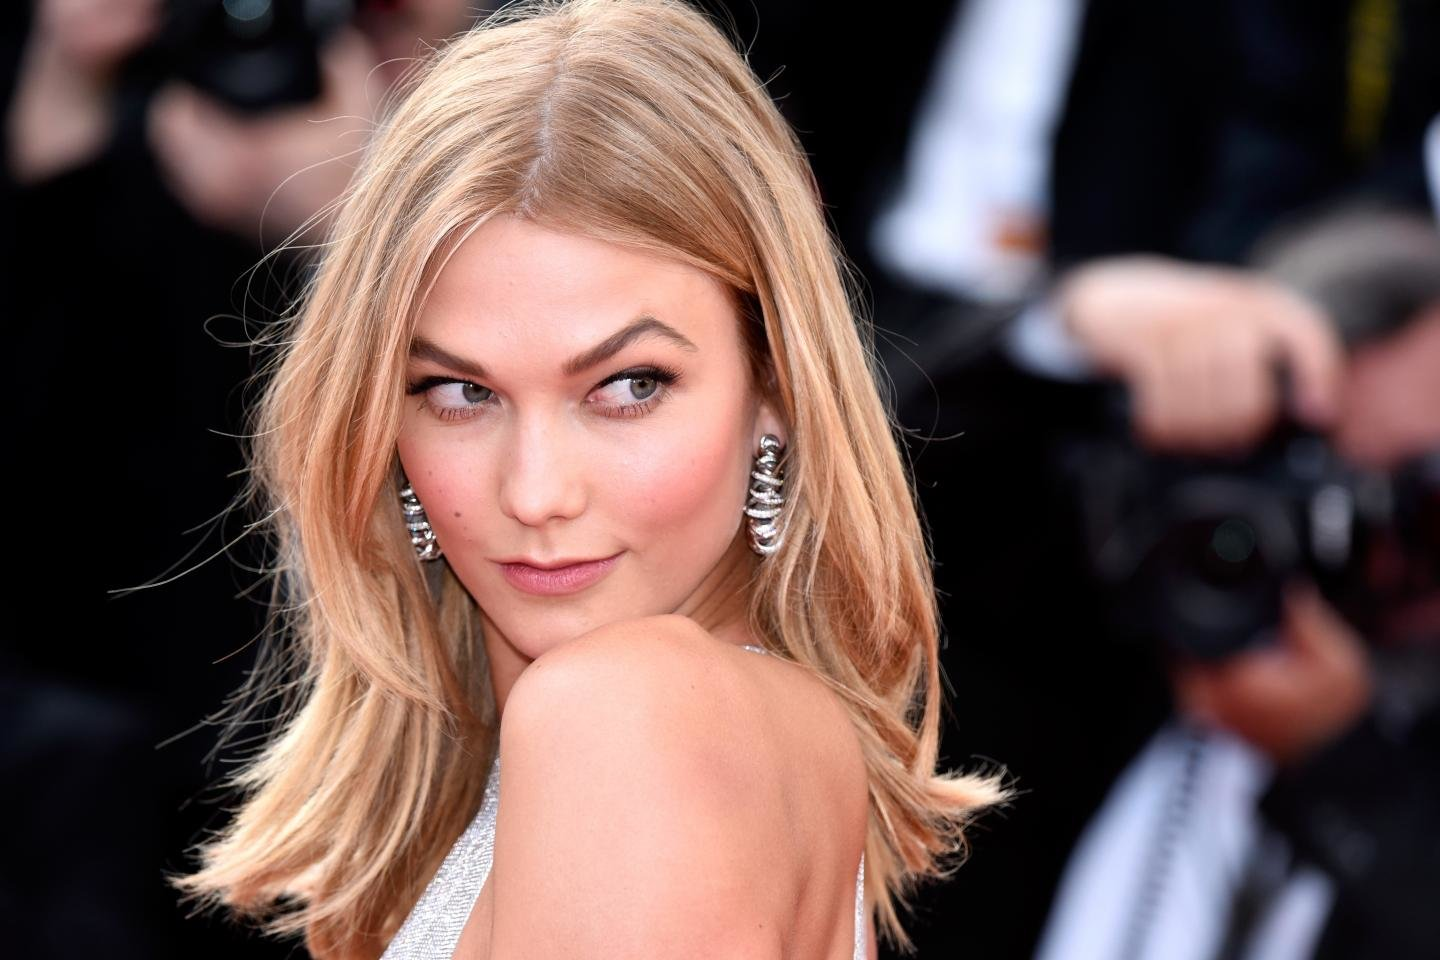 Awesome Karlie Kloss free wallpaper ID:400072 for hd 1440x960 computer